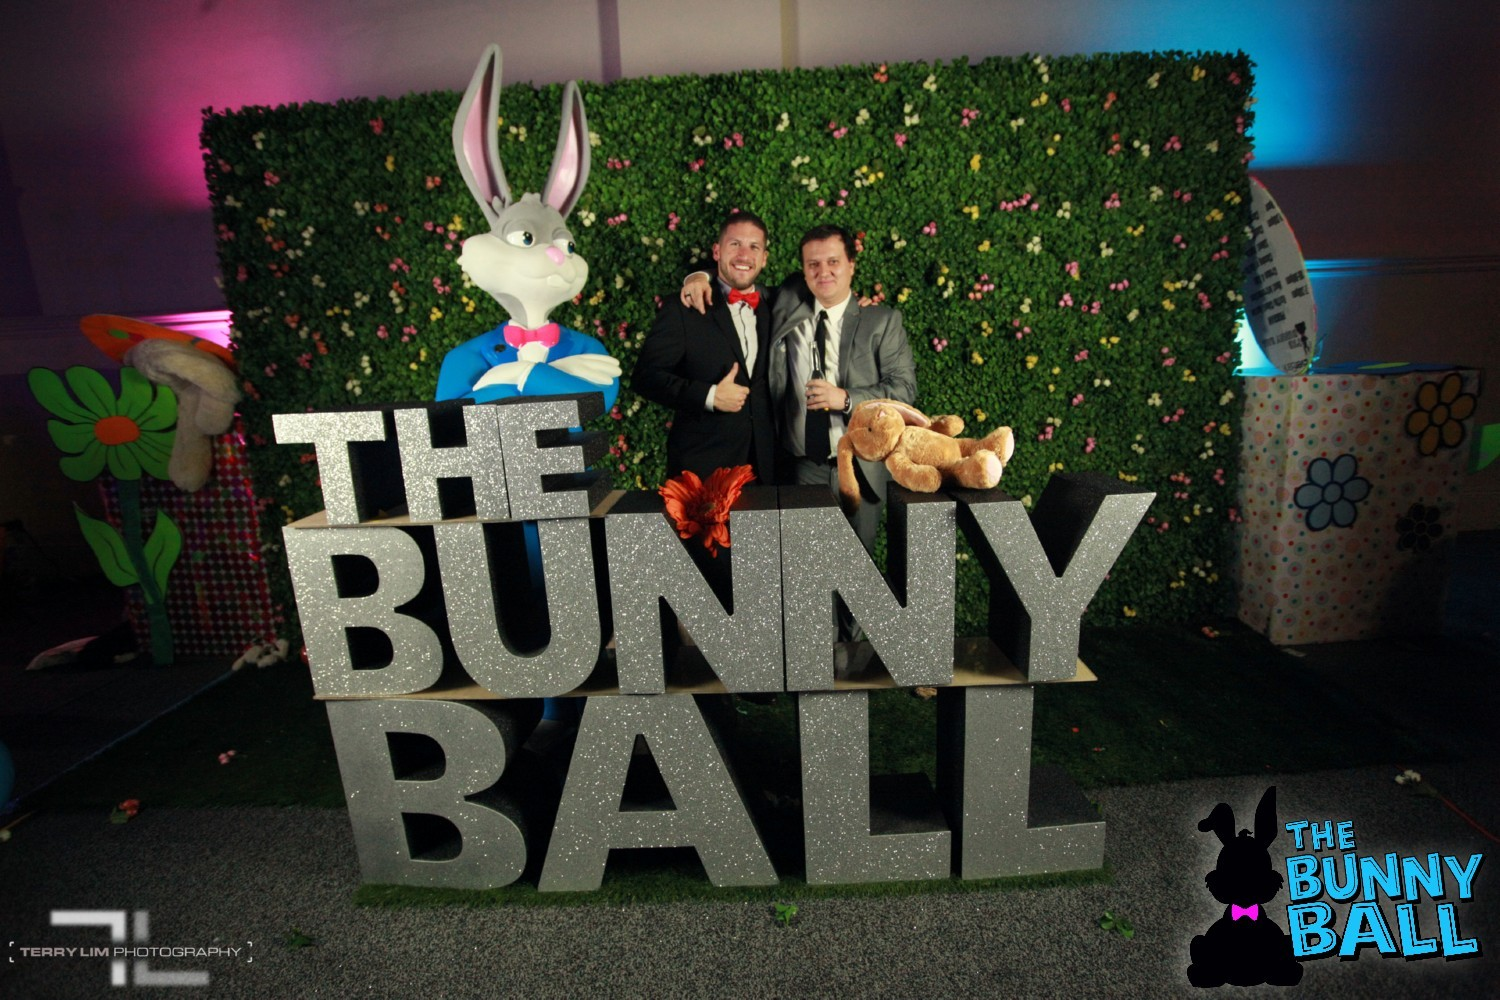 Bunny-Ball-2018-Terry-Lim- 308.jpg